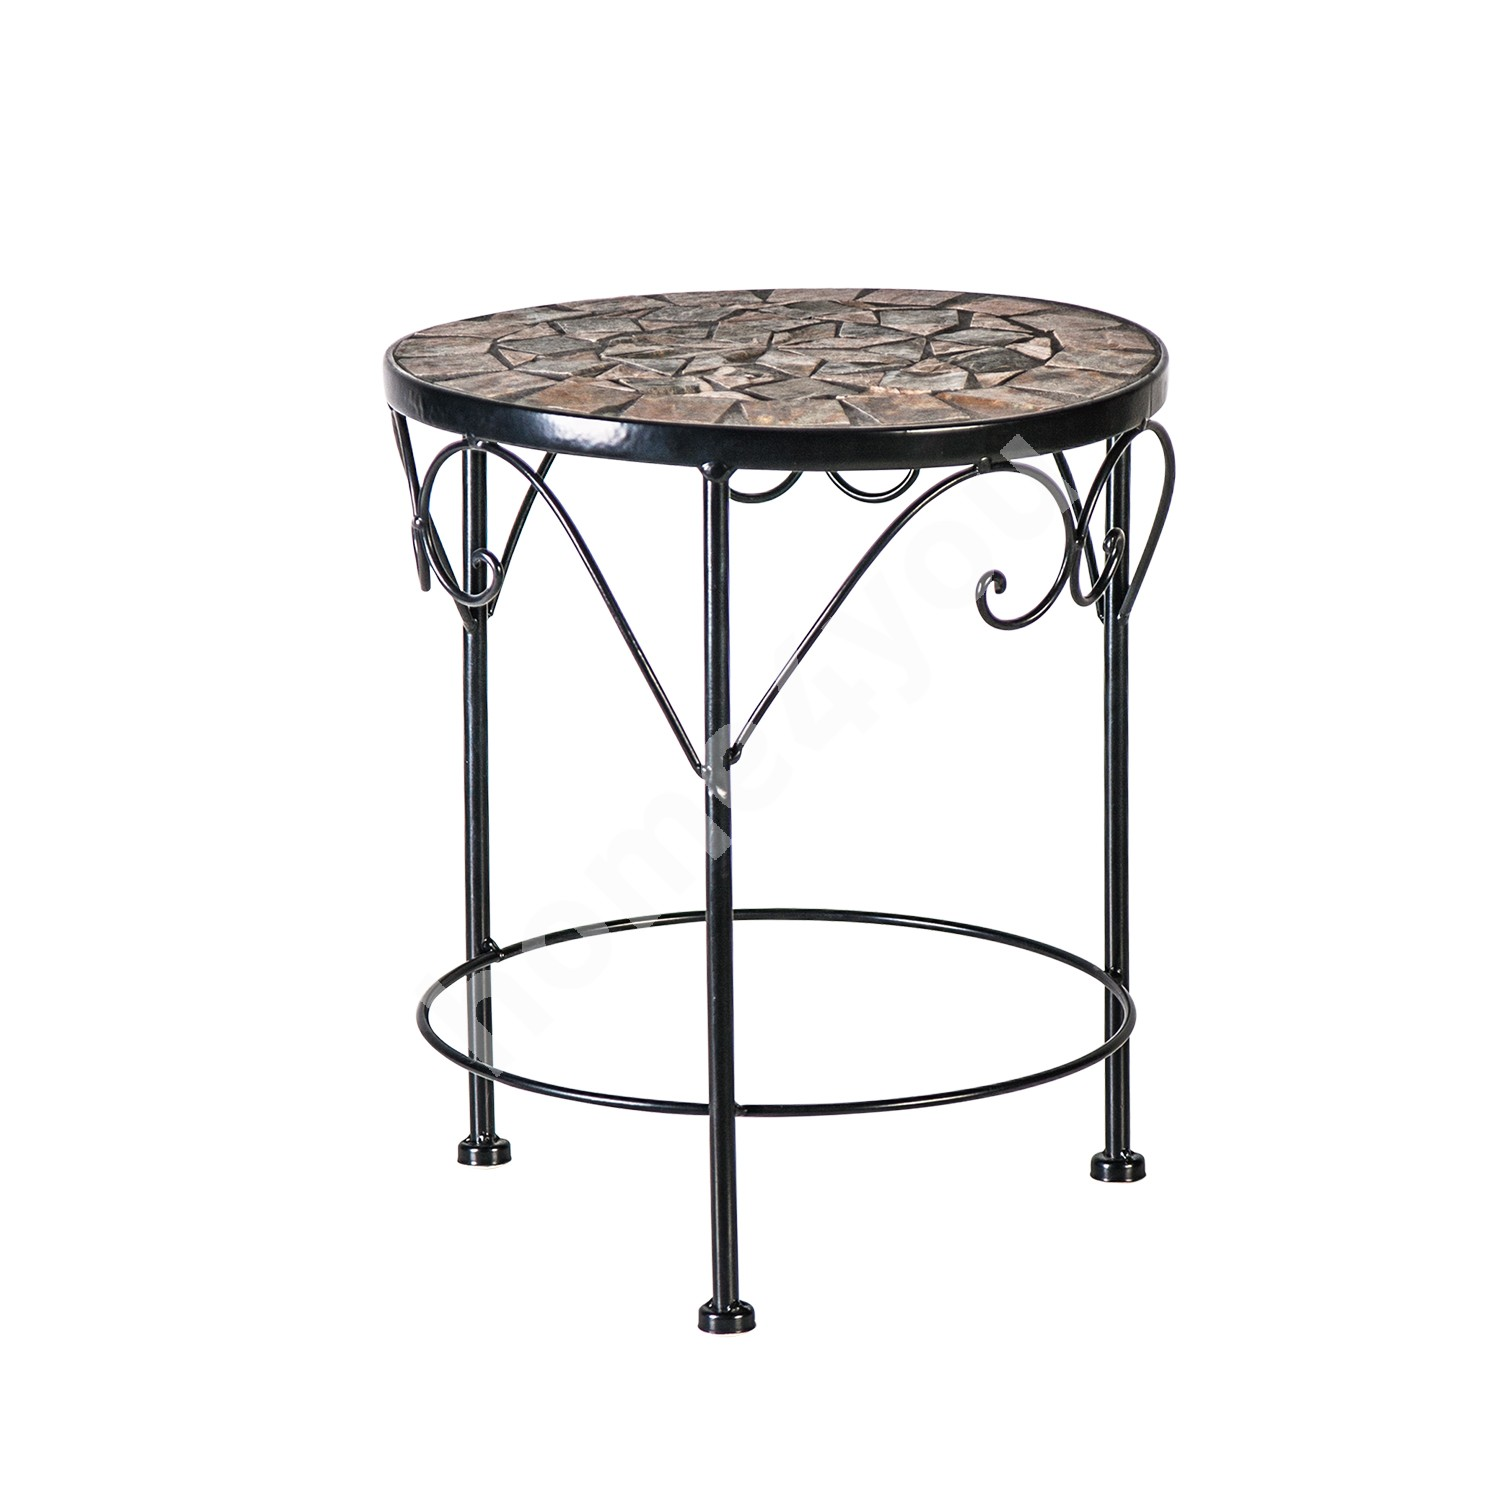 Flower stand MOSAIC D20xH25cm, mosaic top: dark grey/brown stone, metal frame, color: black